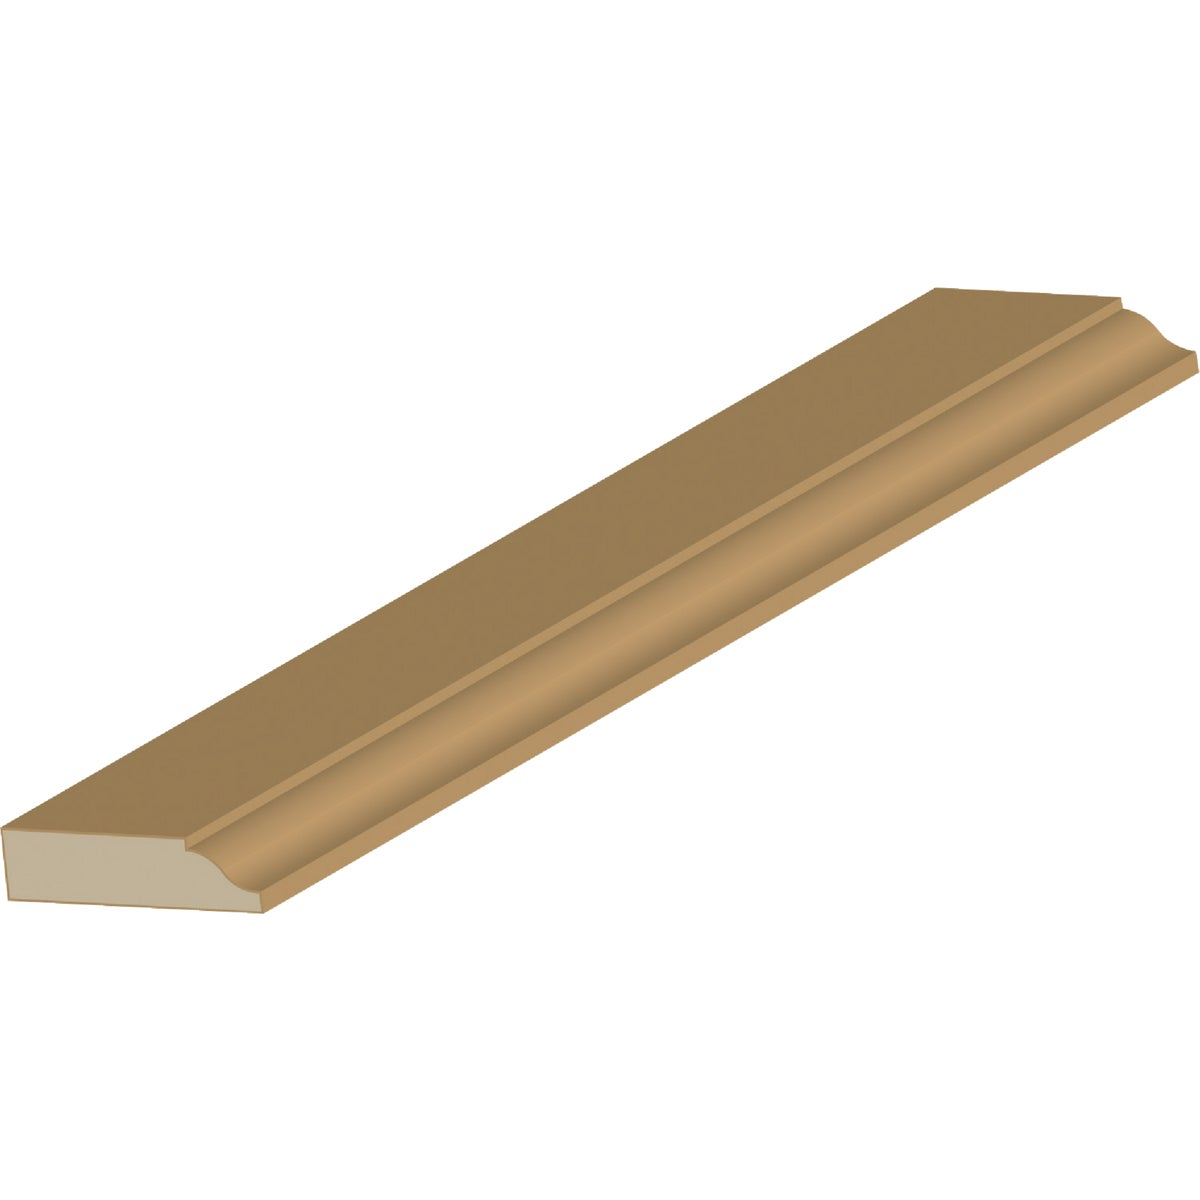 WM946 7' COL DOOR STOP - 94670RDIB by Jim White Millwork